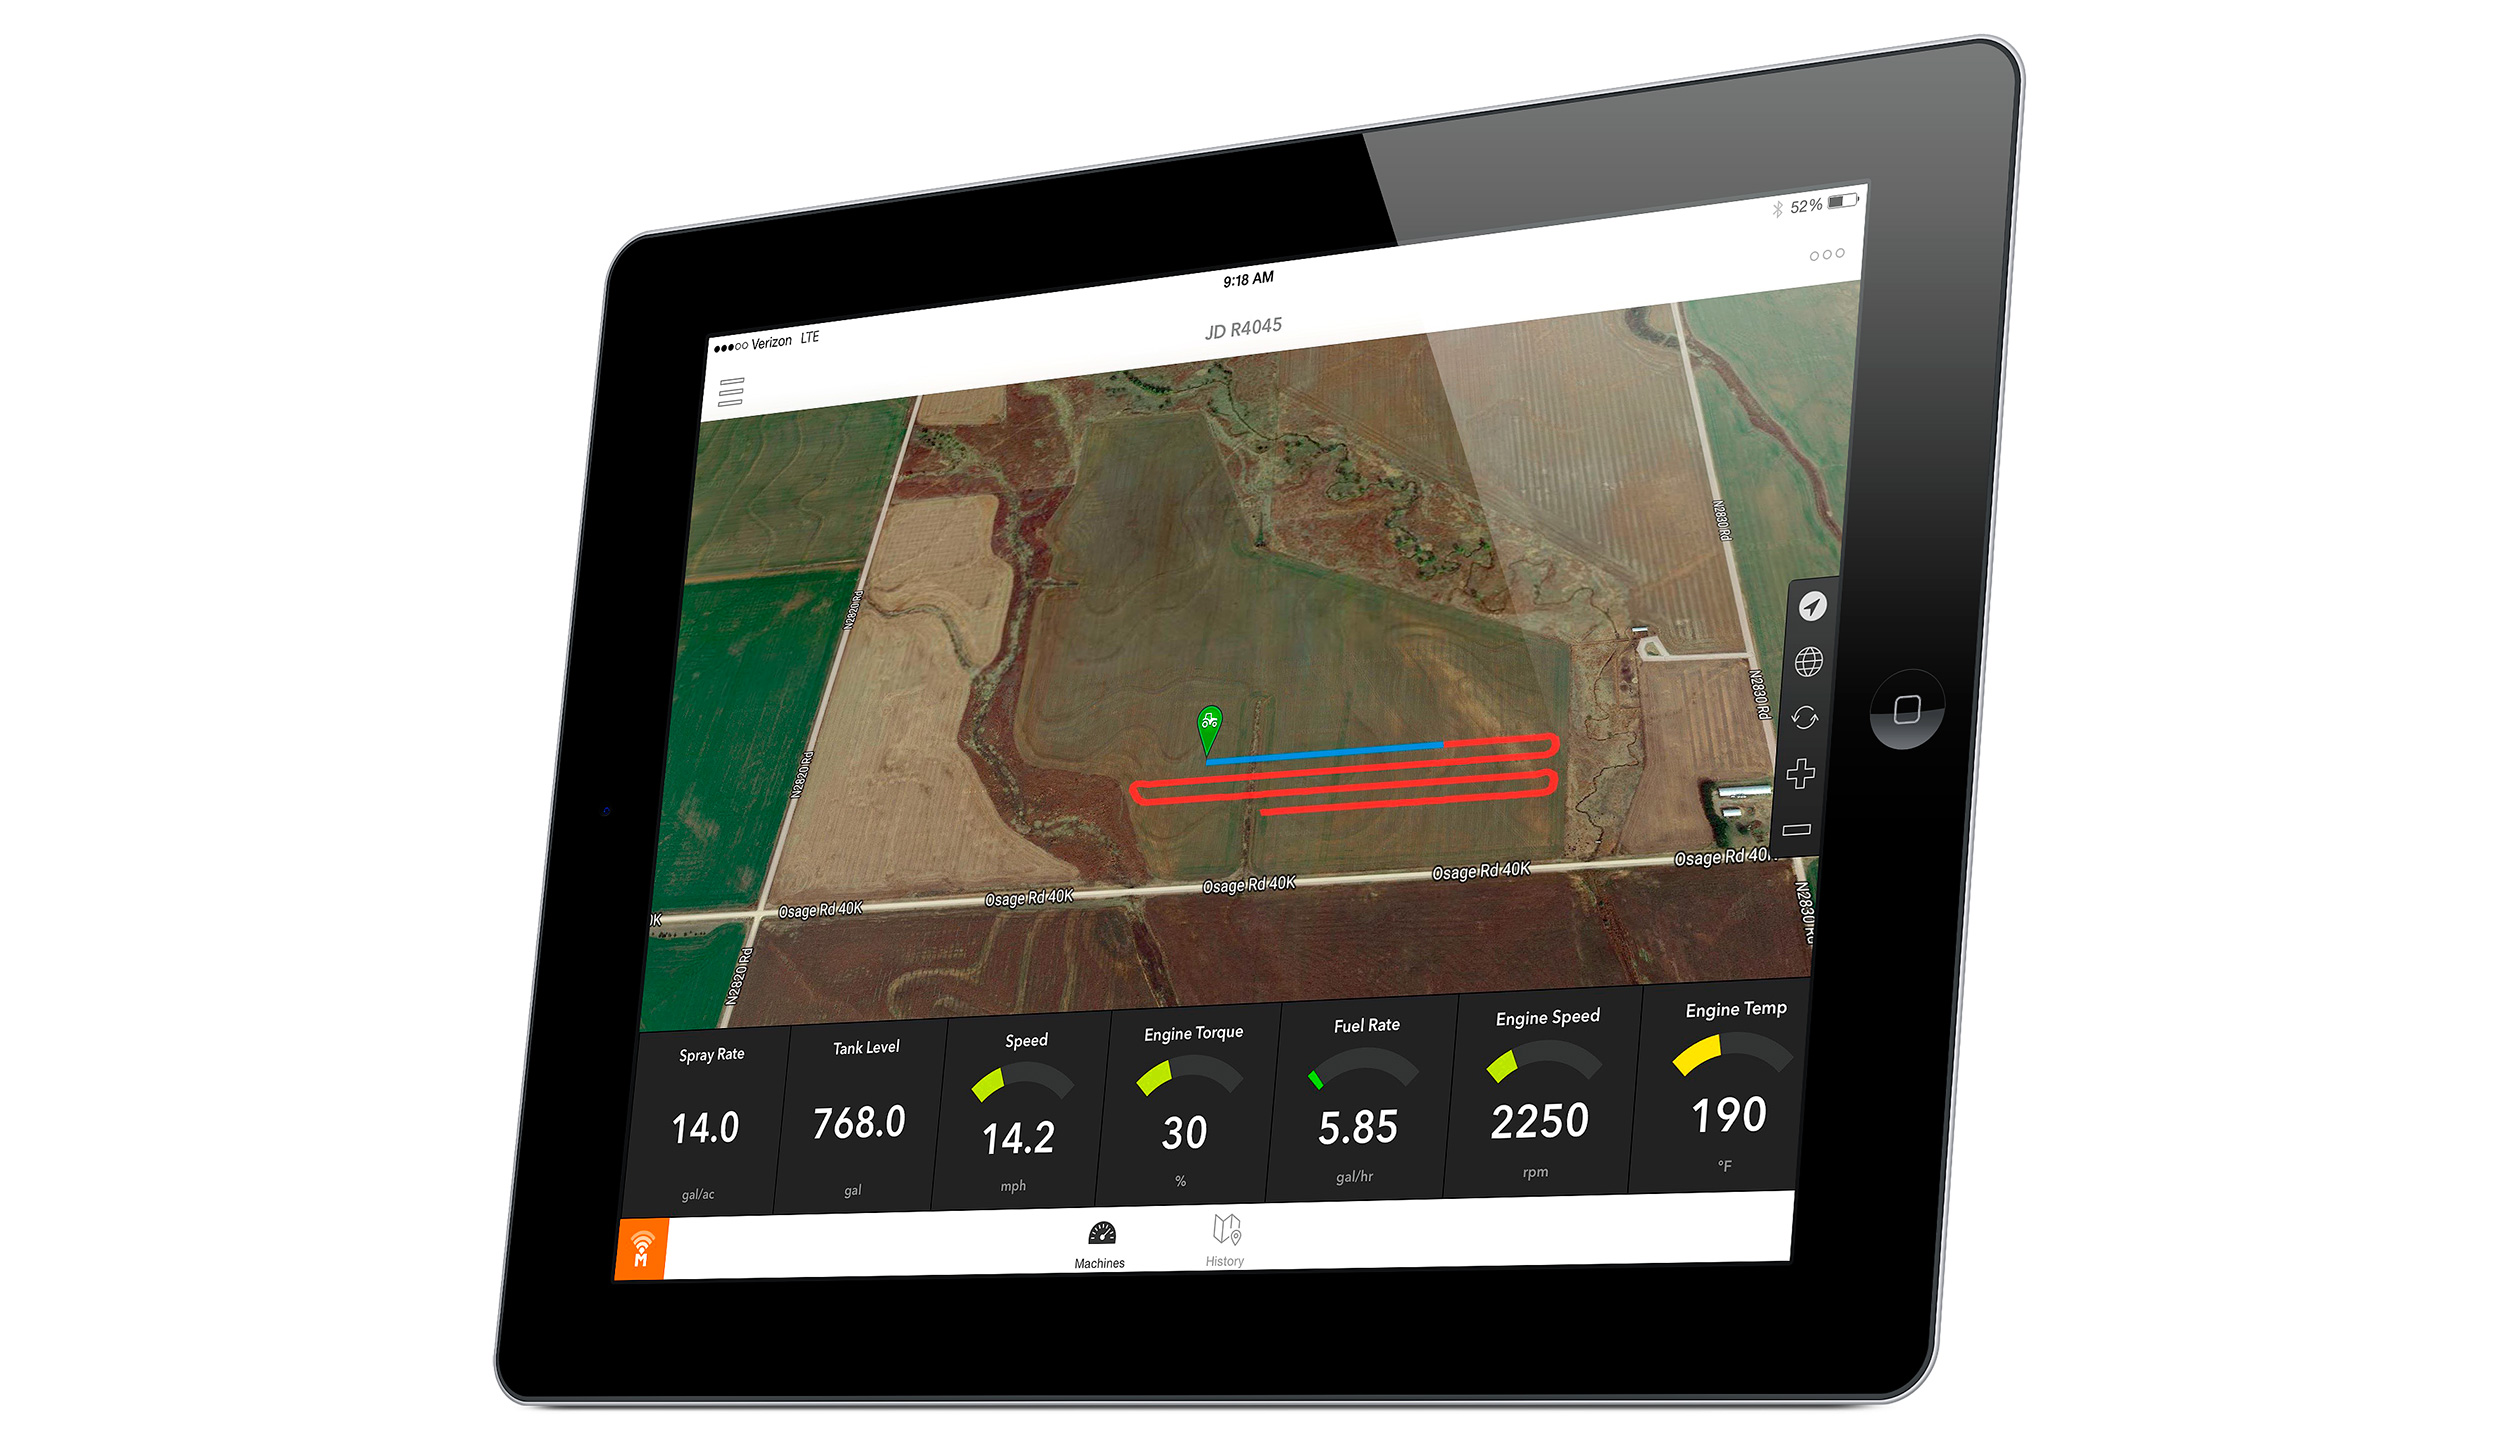 Farmobile's app displays in real time the path of a tractor, combine, or other machine, along with agronomic data such as planting date, crop yield, and moisture, as well as engine information.